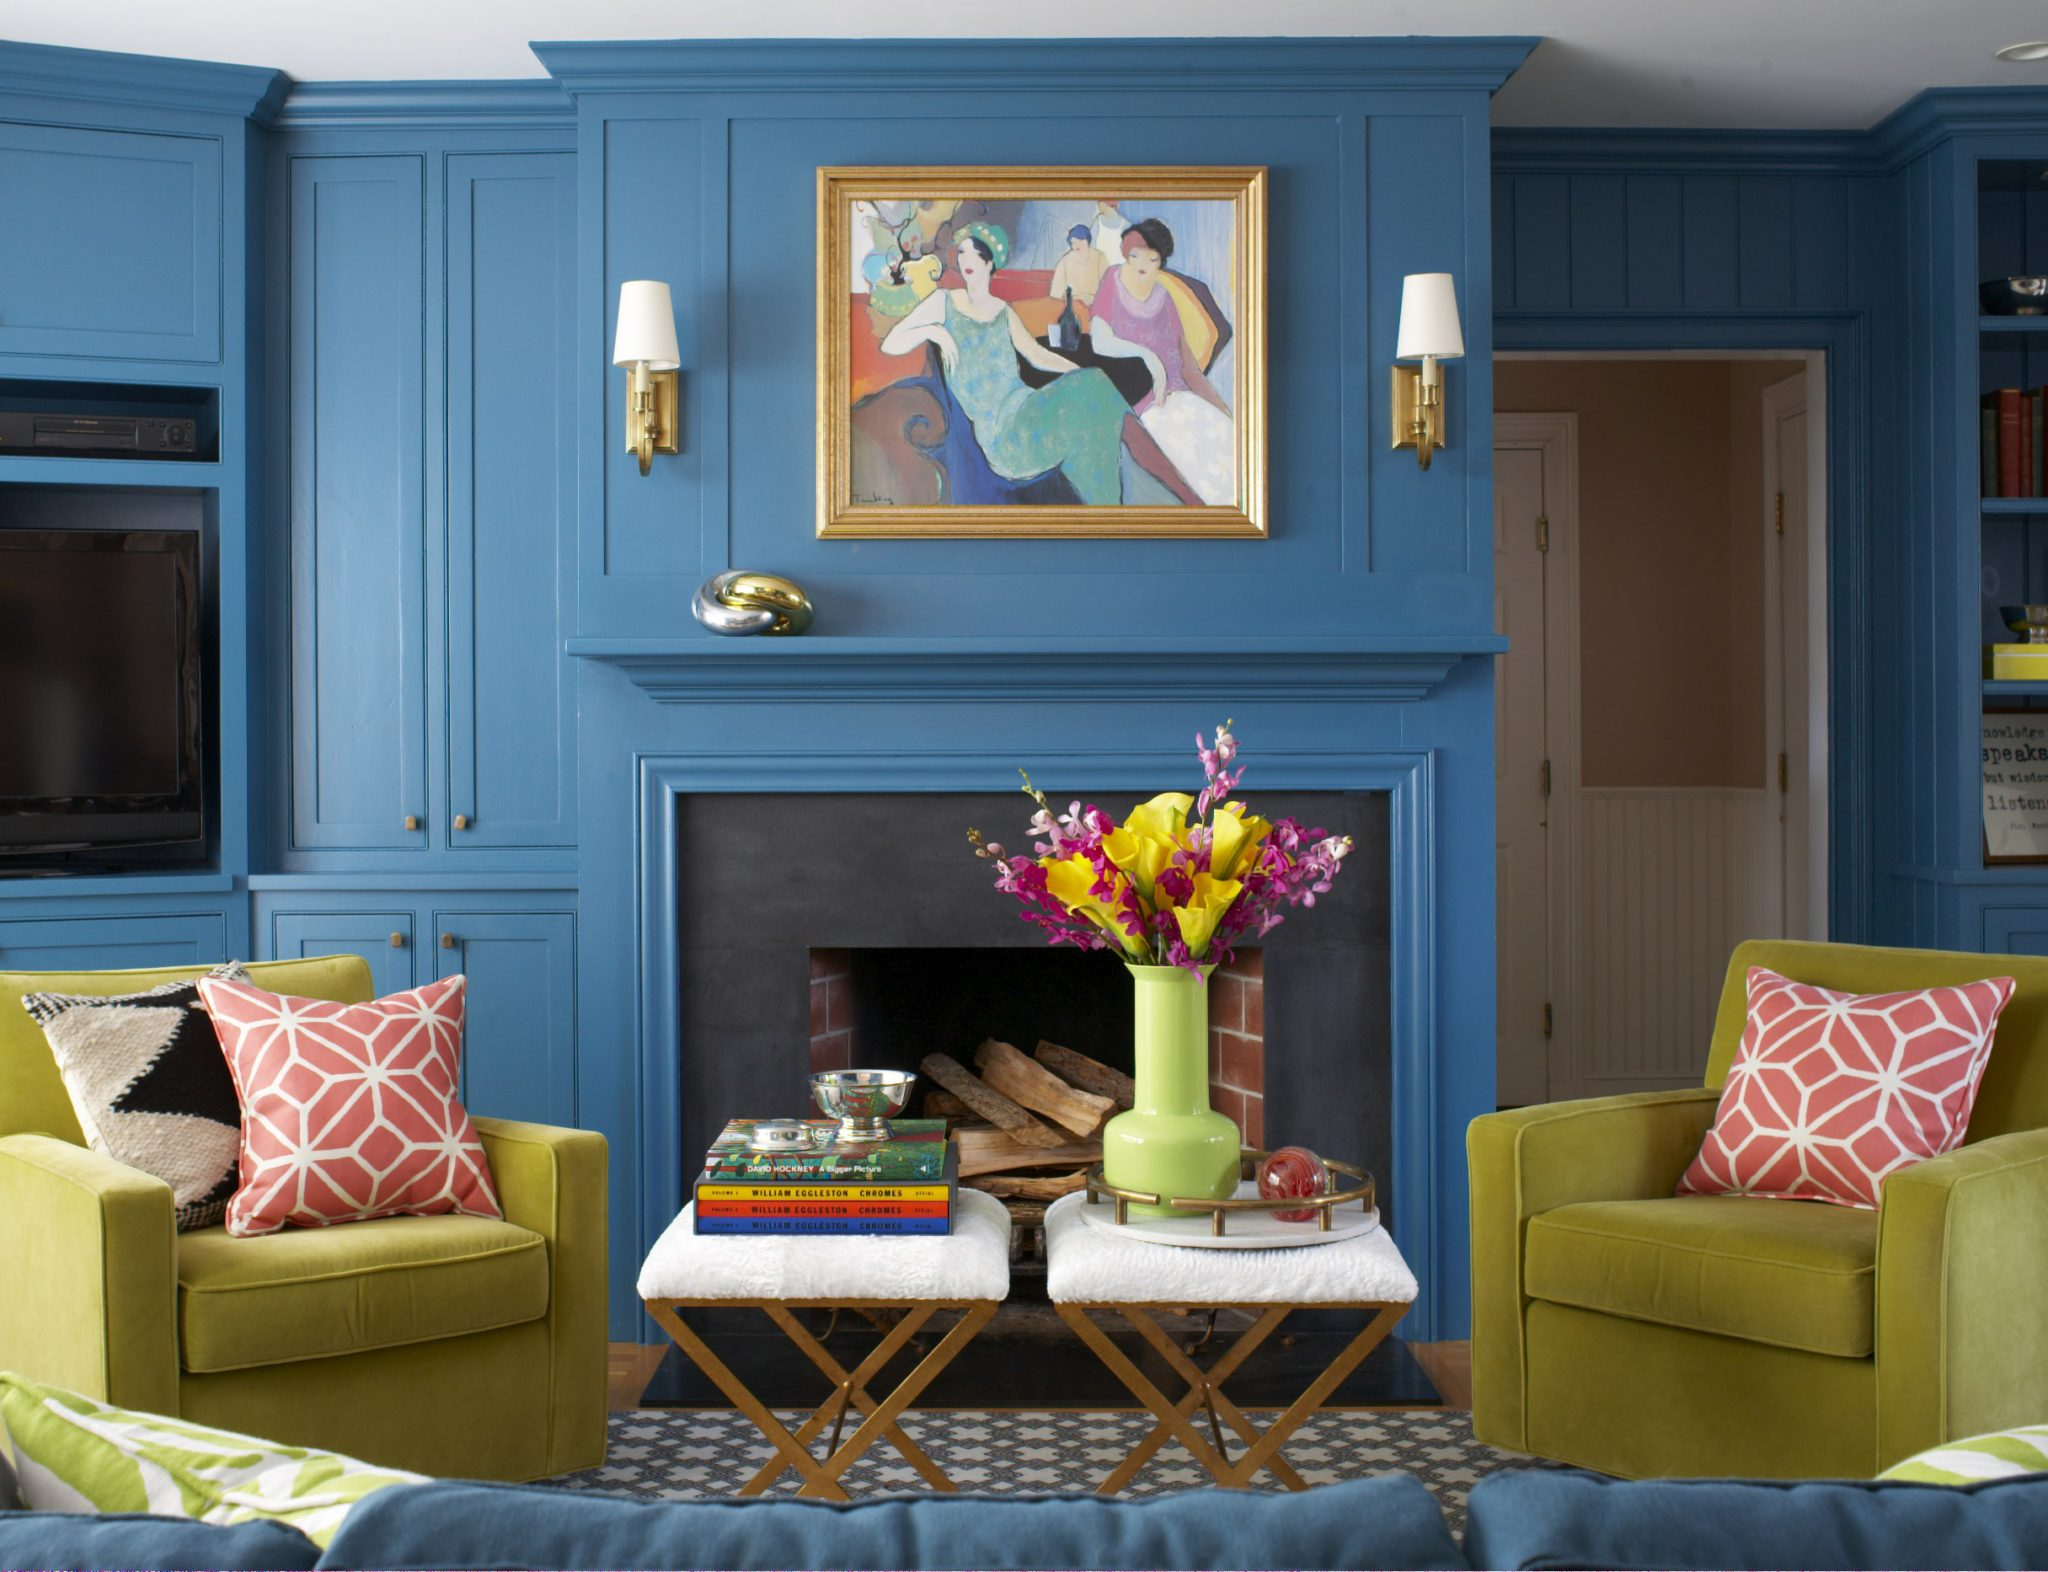 Living Room with Art and Sconces over Fireplace by Liz Caan & Co.